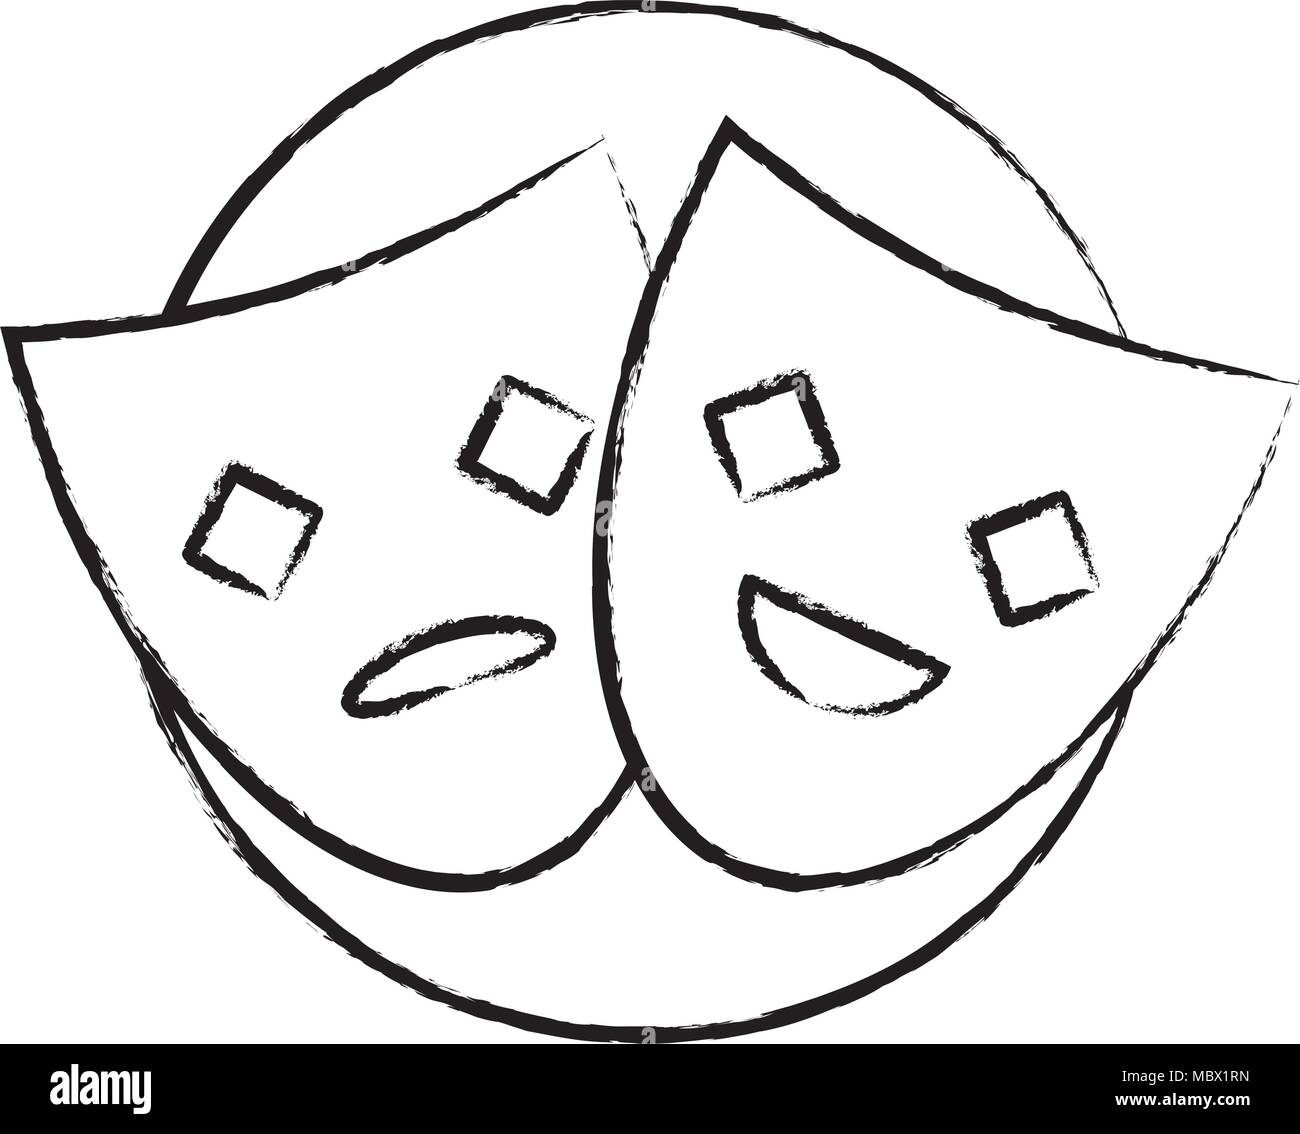 sketch of theather masks over white background, vector illustration - Stock Image